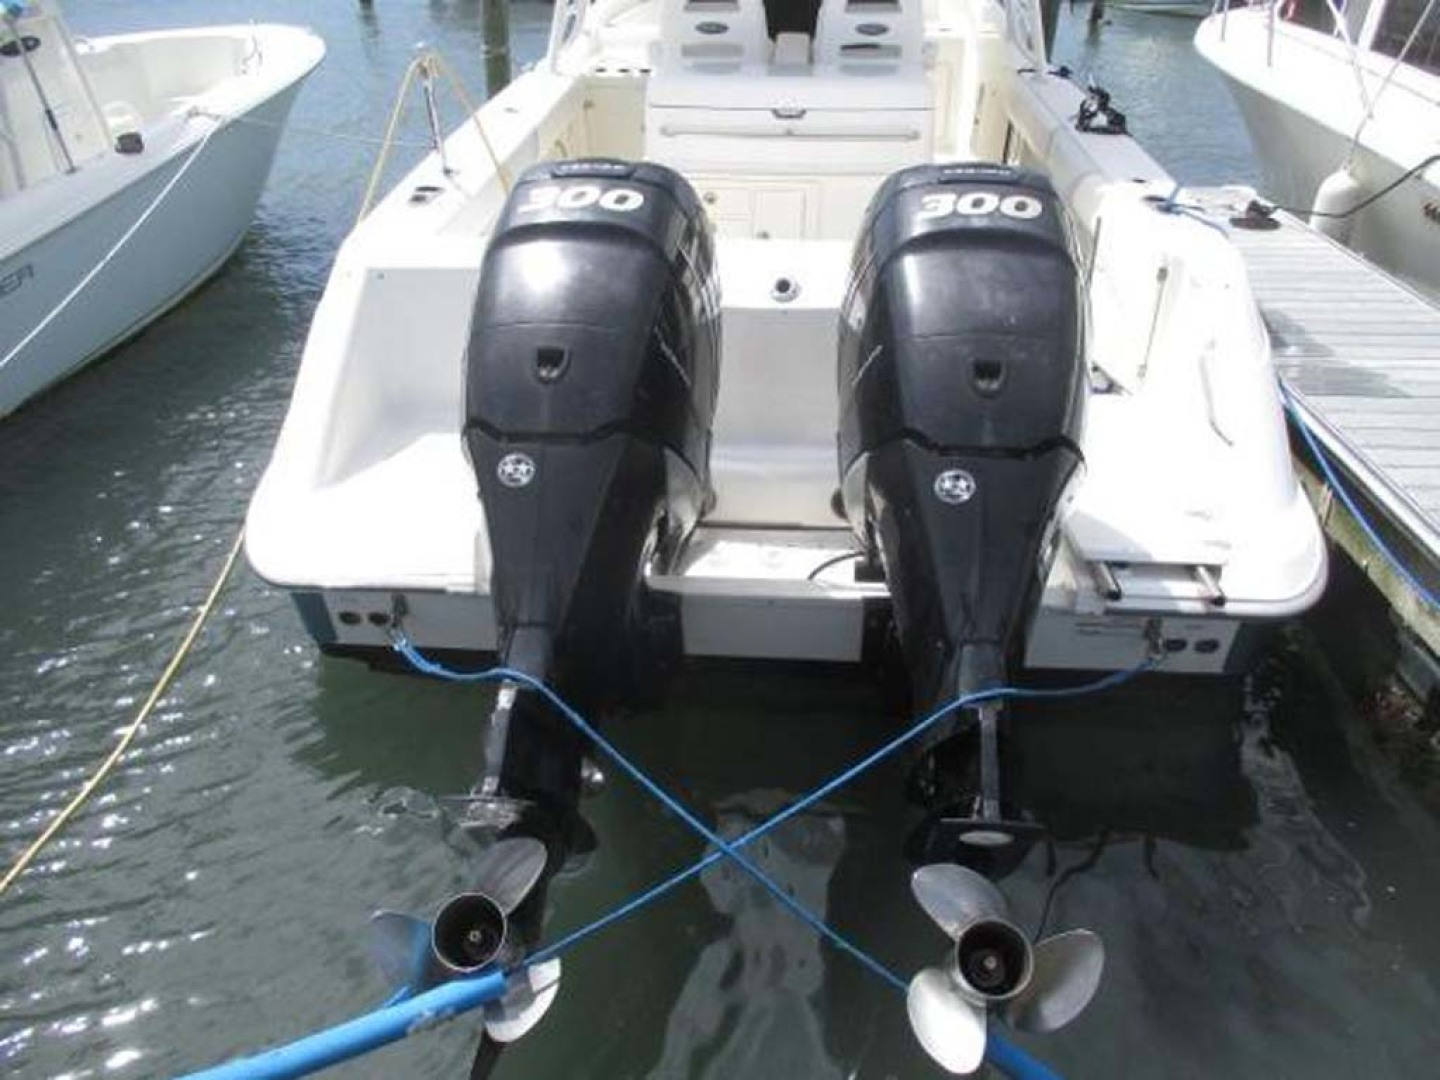 Boston Whaler-320 Outrage 2011 -Cape May-New Jersey-United States-Engines-1237202 | Thumbnail